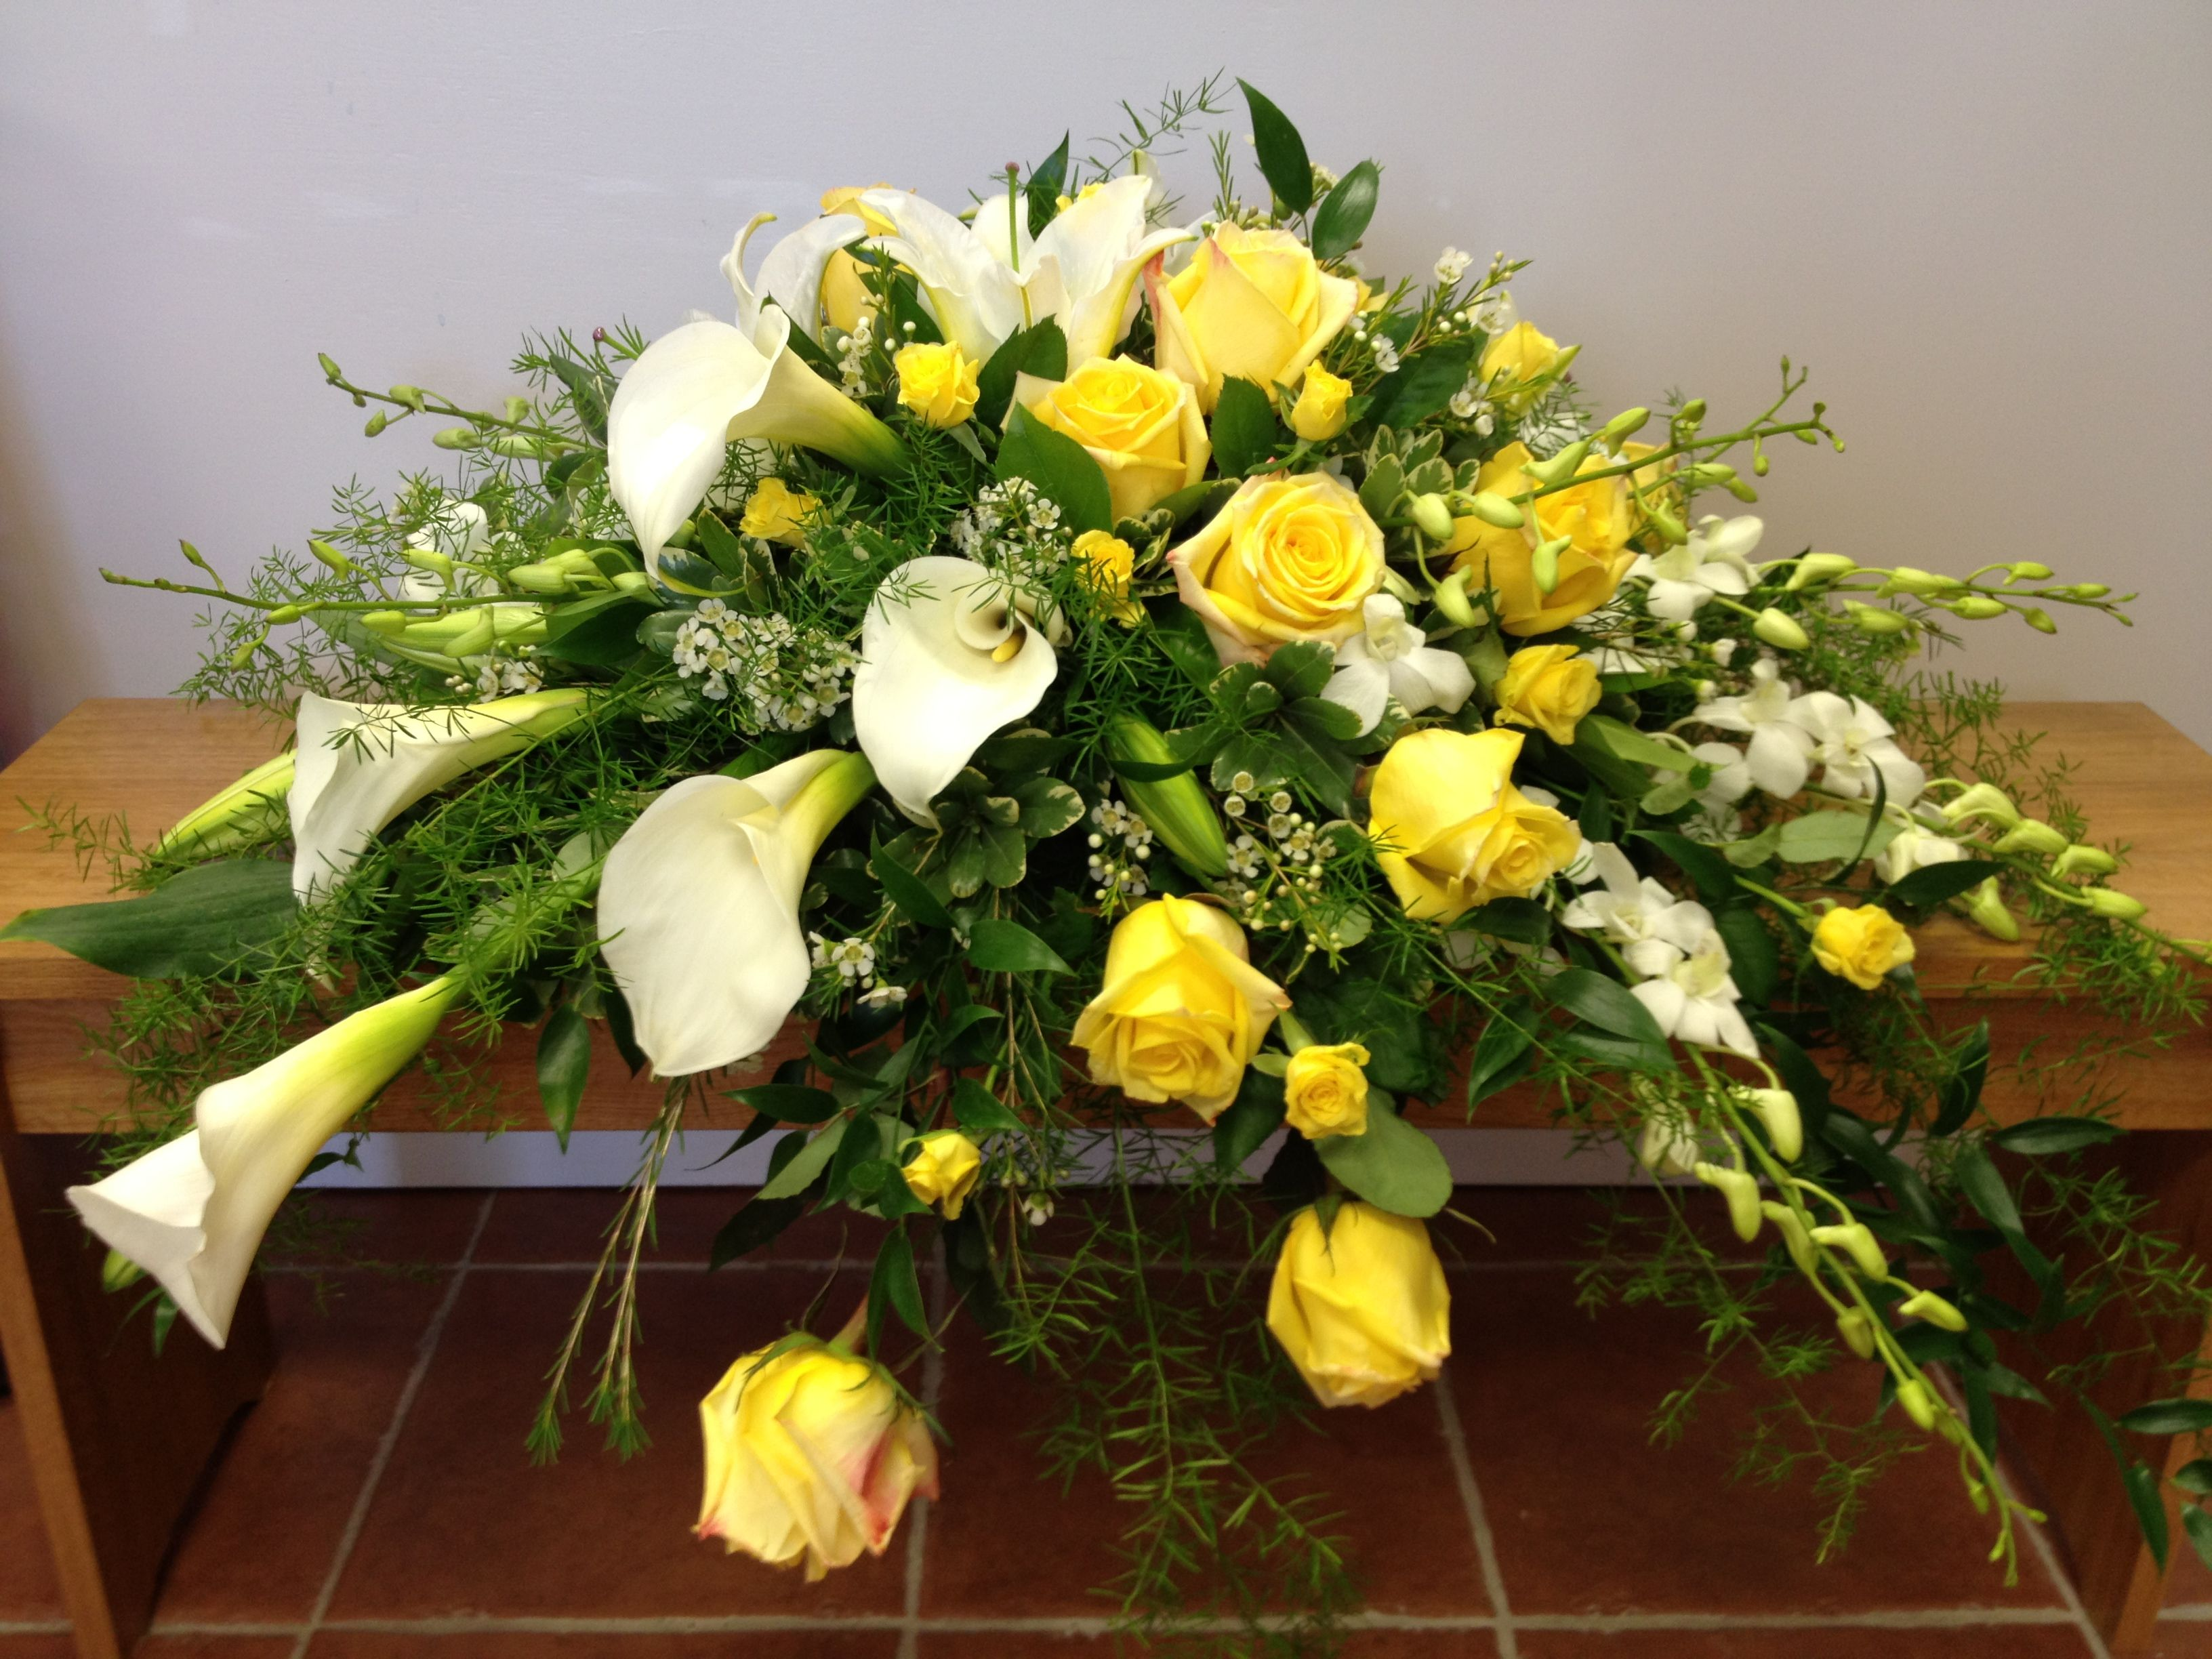 Best 25 casket sprays ideas on pinterest casket casket flowers instead of an archway we will have a spray of flowers behind us dhlflorist Choice Image